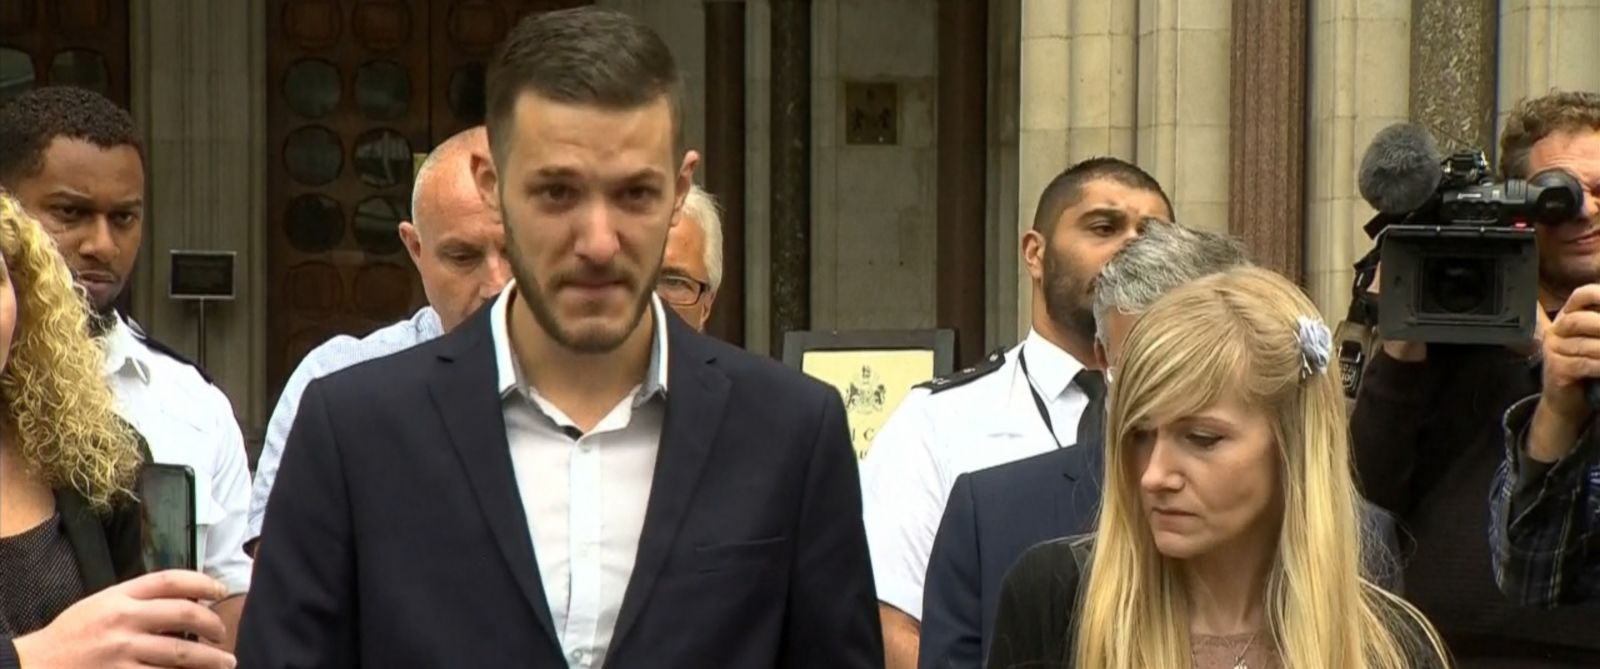 VIDEO: The parents of Charlie Gard have decided not to go forward with their efforts to take him to the United States for treatment after an assessment from a U.S. doctor.